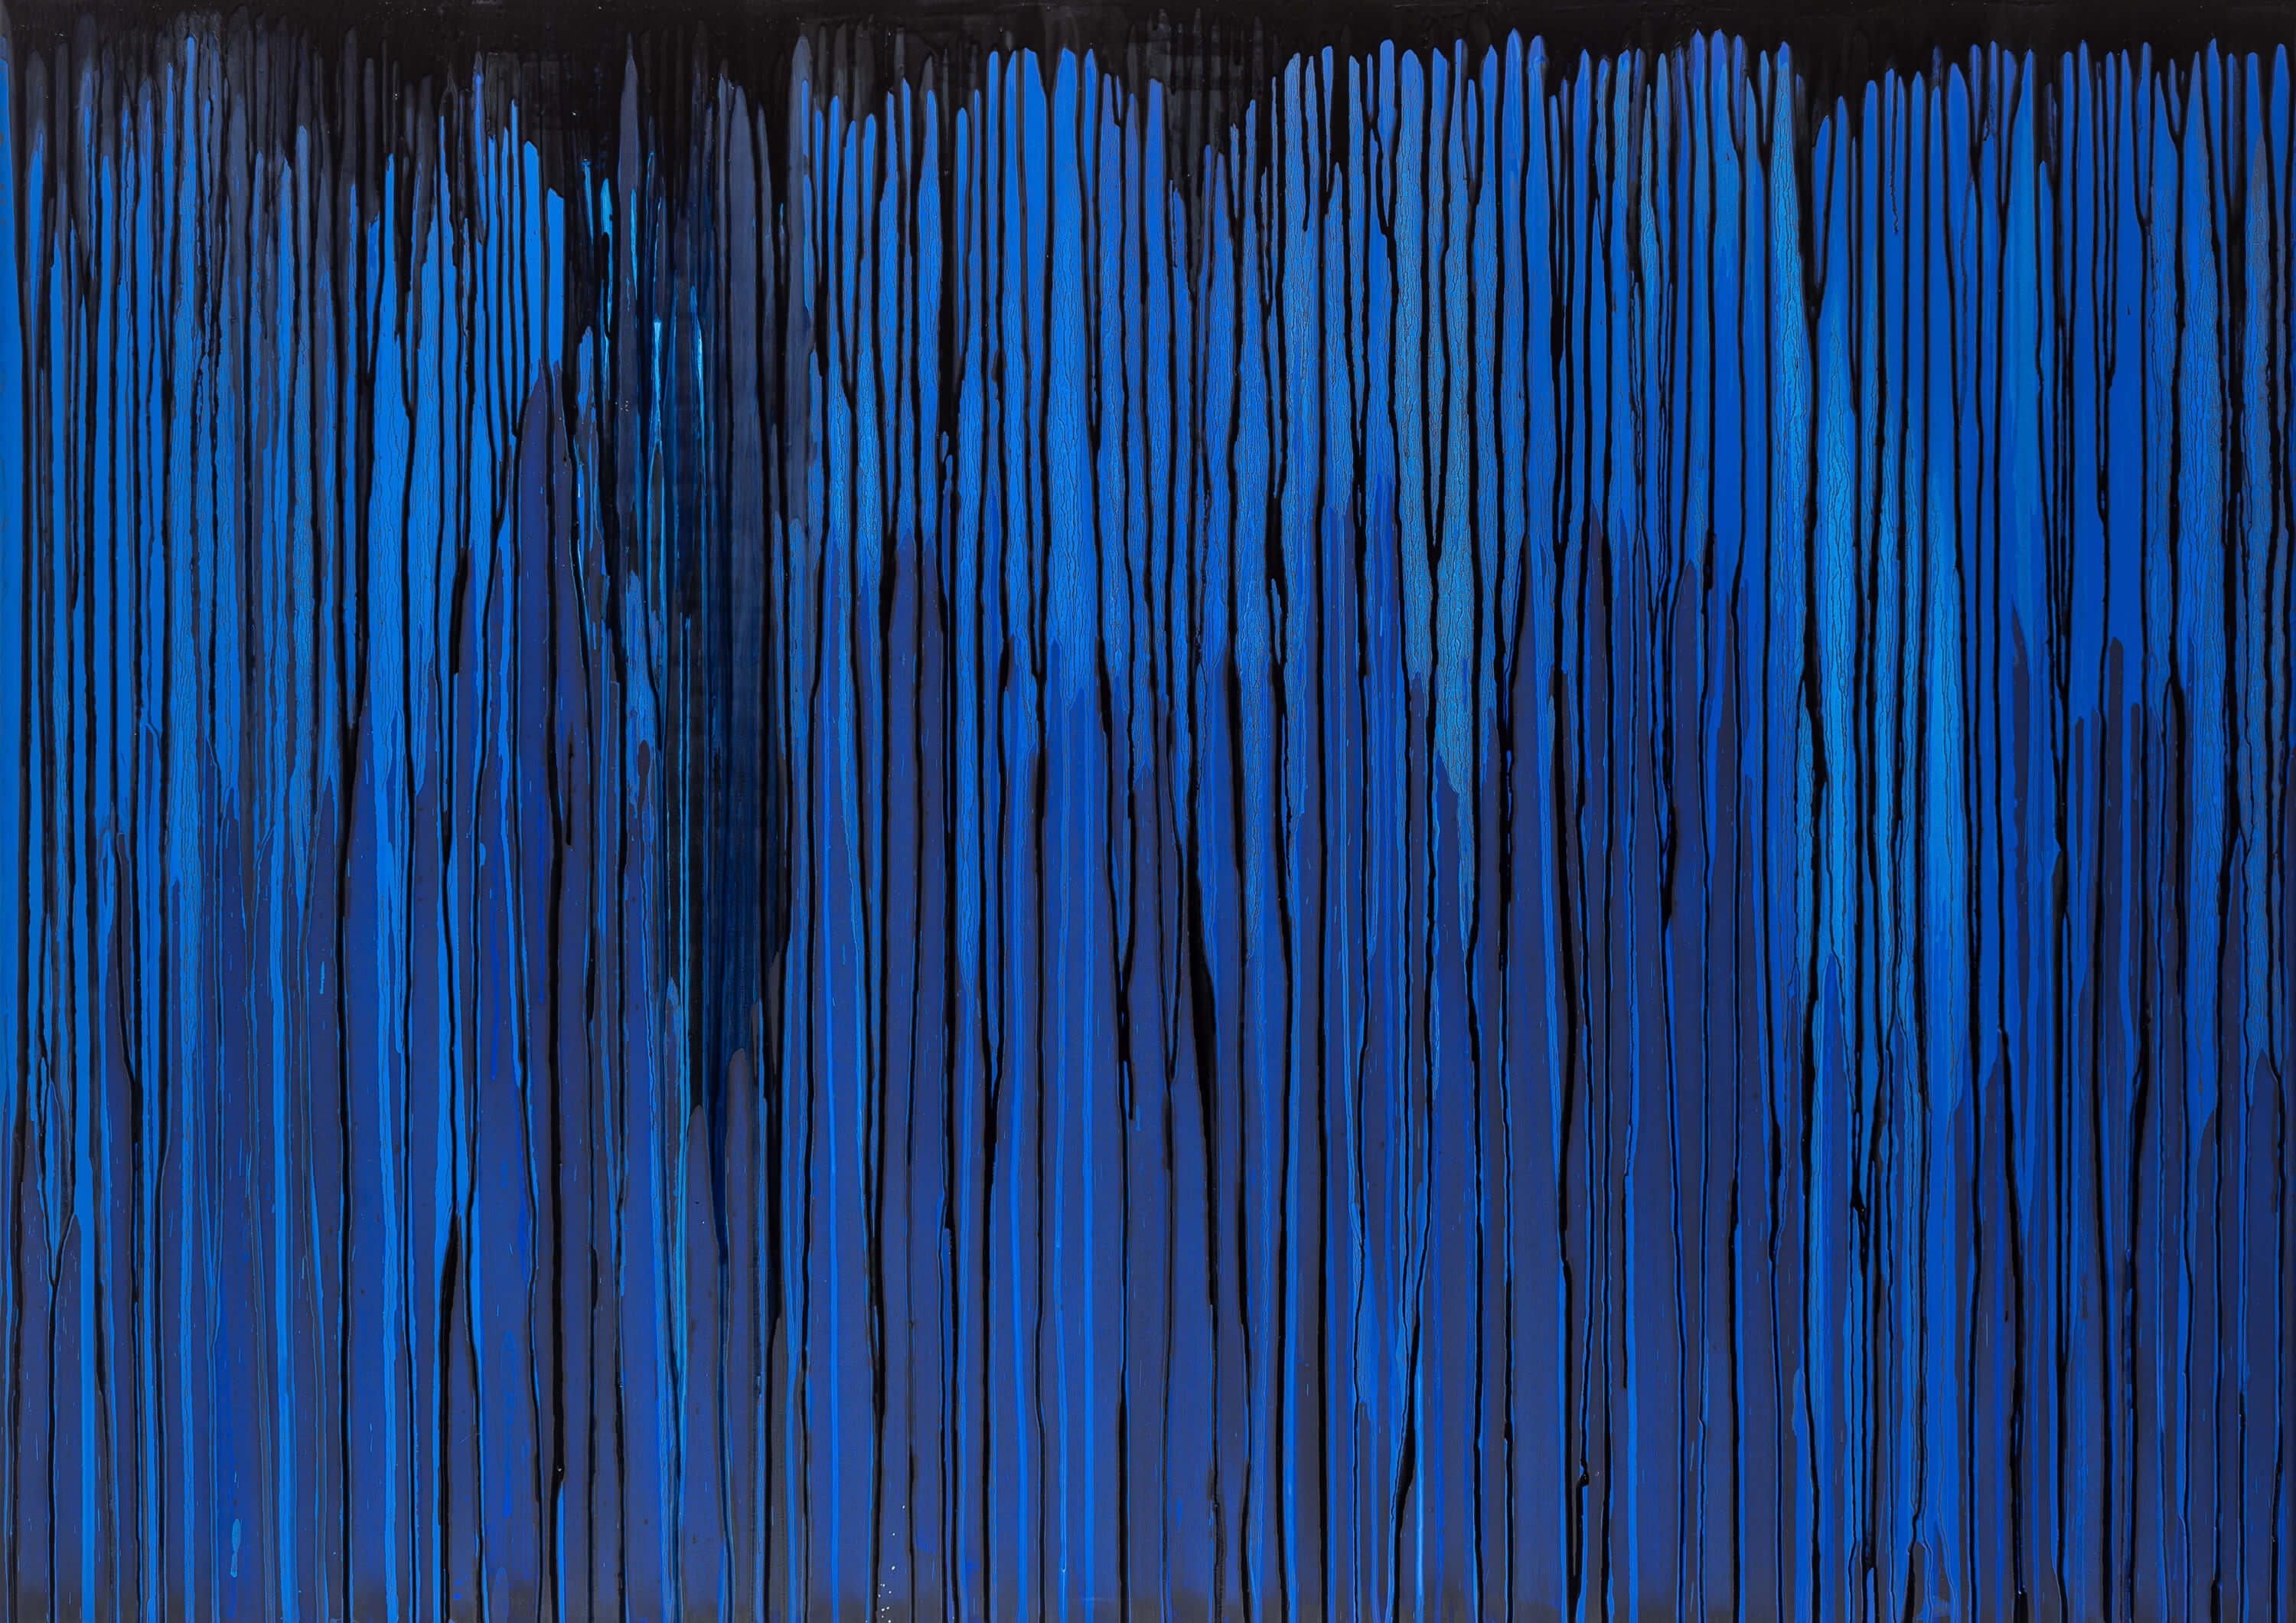 Joanna Borkowska Frequencies Blue 2013 oil and pigments on canvas 140 x 100 cm